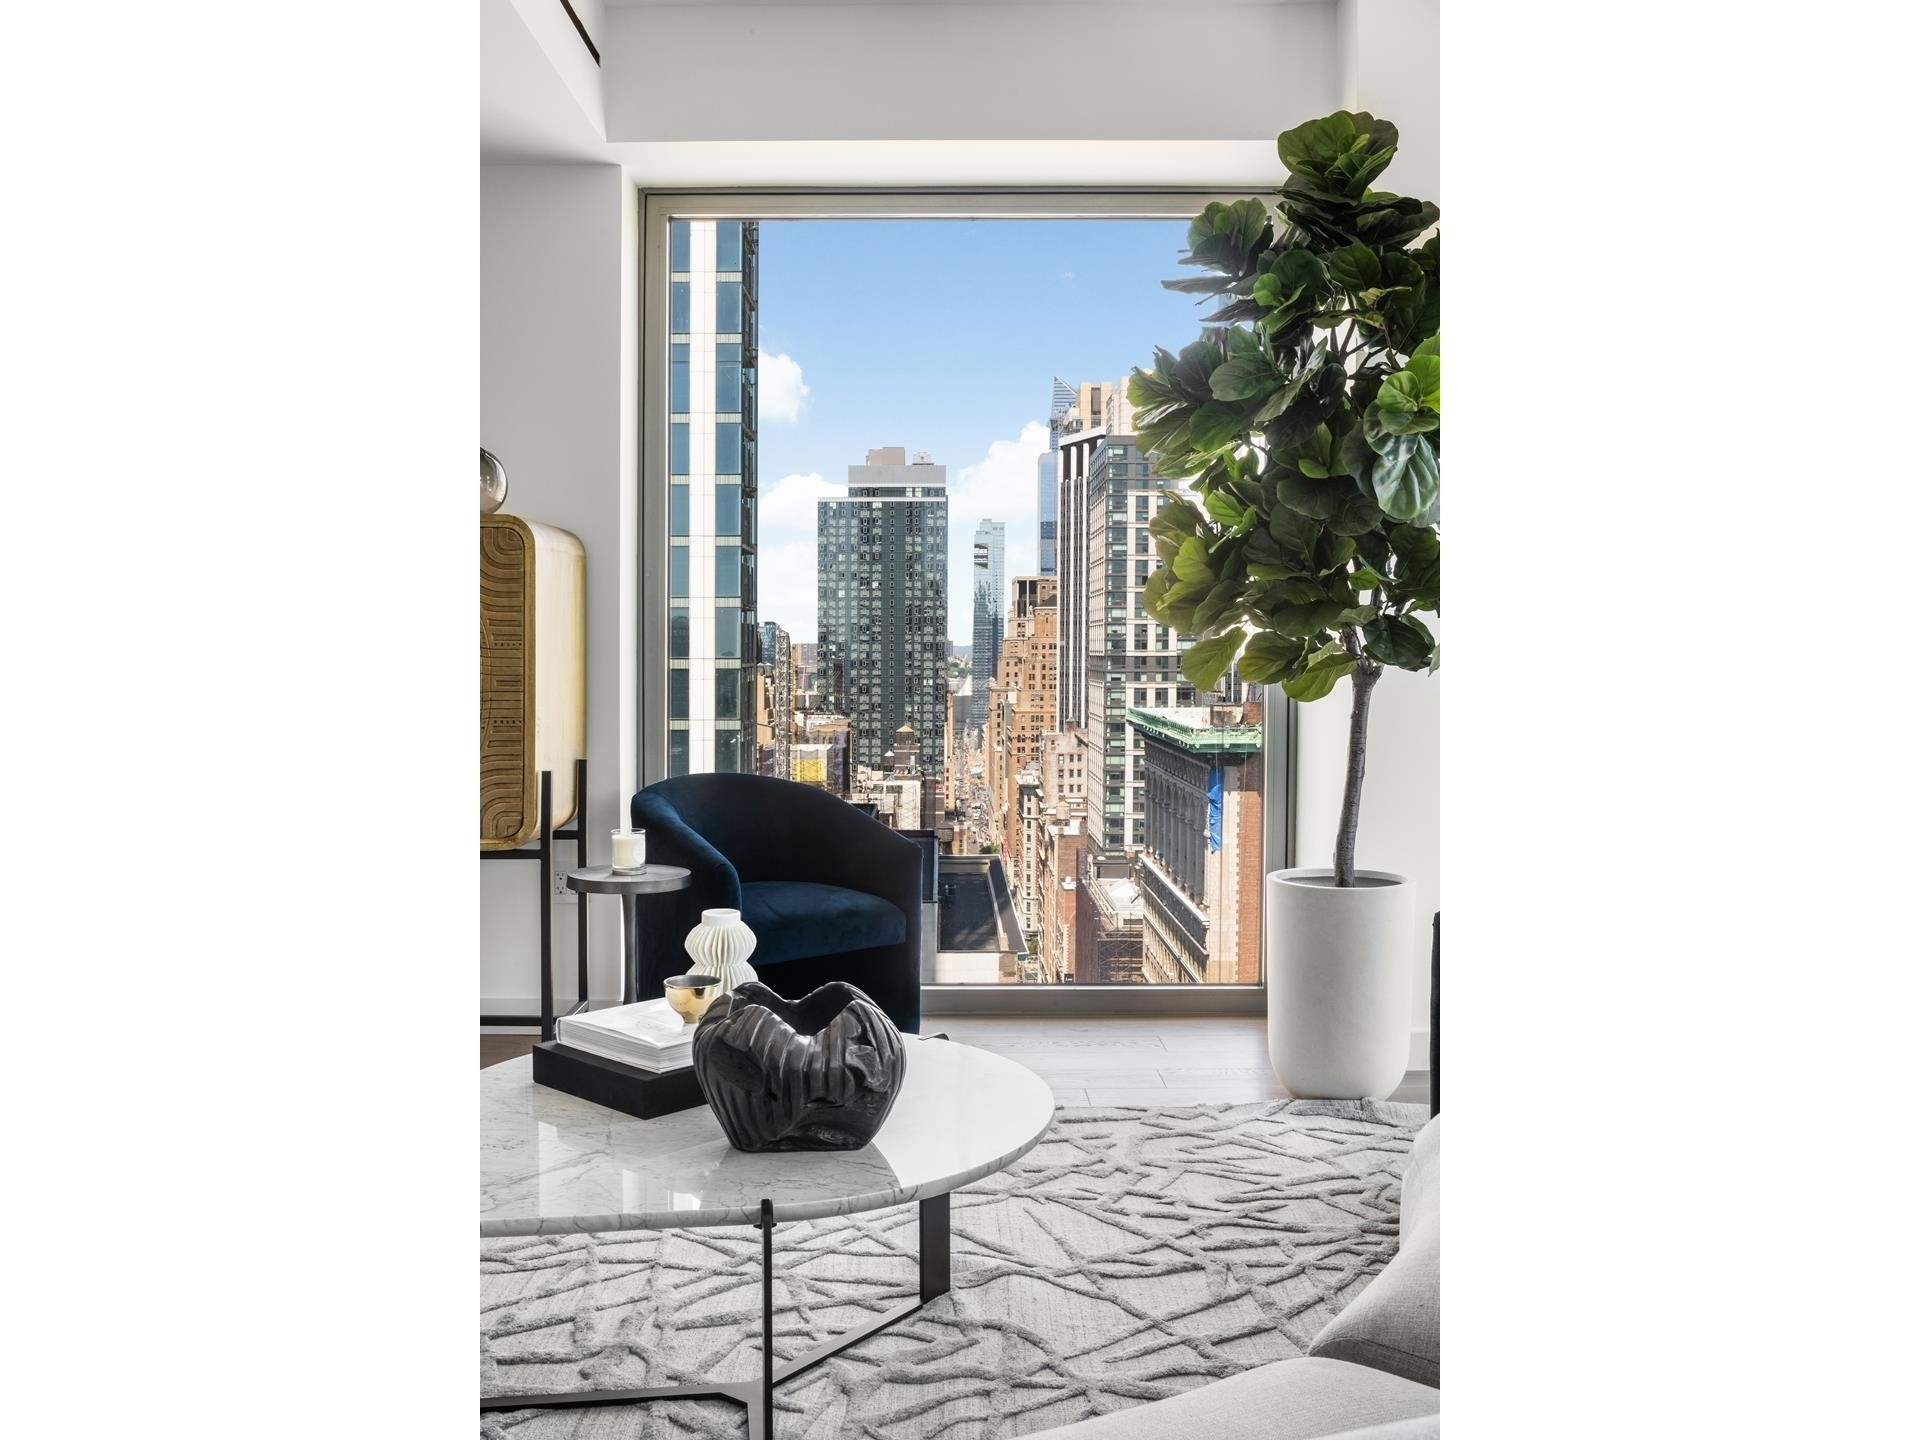 Property at 30 East 31st St, 19 NoMad, New York, NY 10016